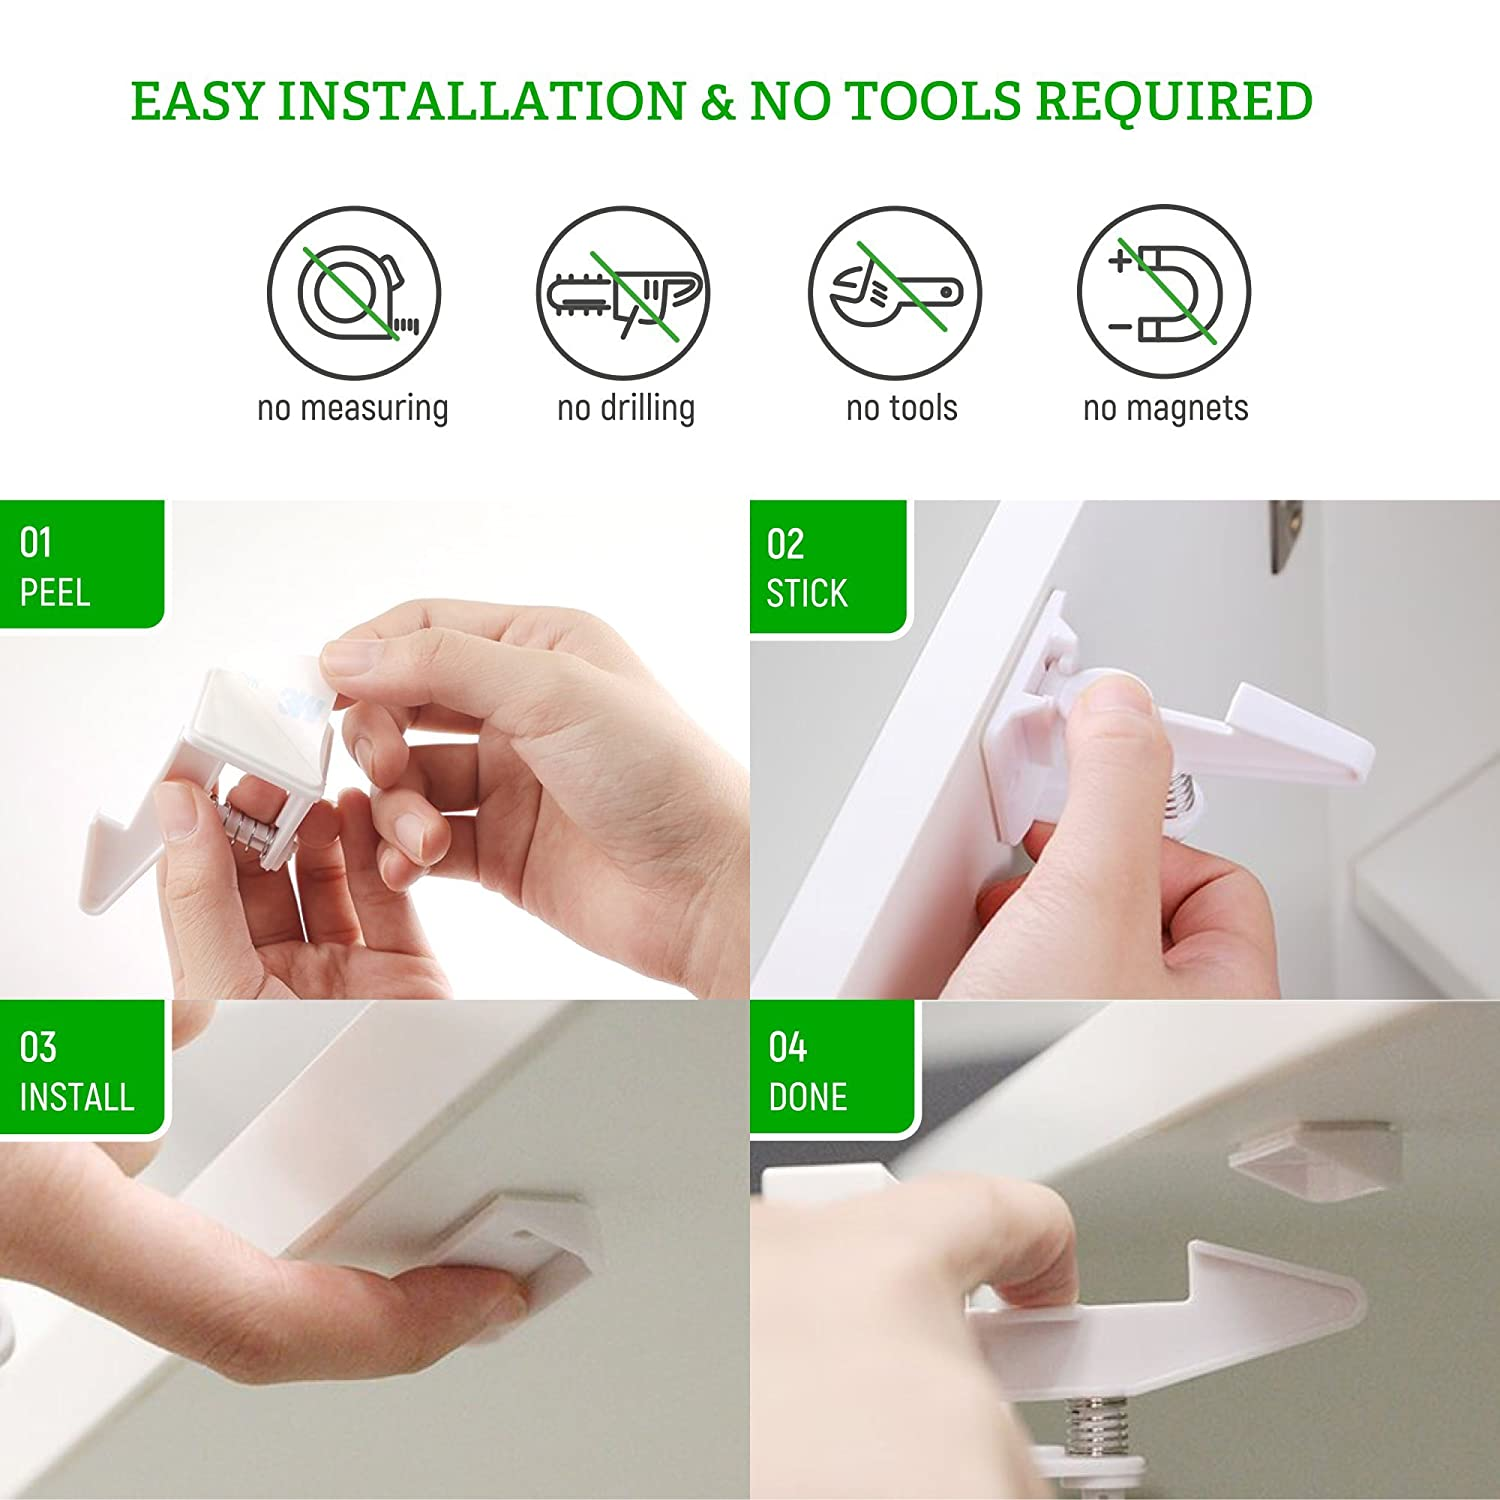 Easy to Install No Tools or Drilling Needed Child Safety Cupboard Latches Invisible Design with Latches and BONUS Installation Videos 10 Packs Black Baby Guard